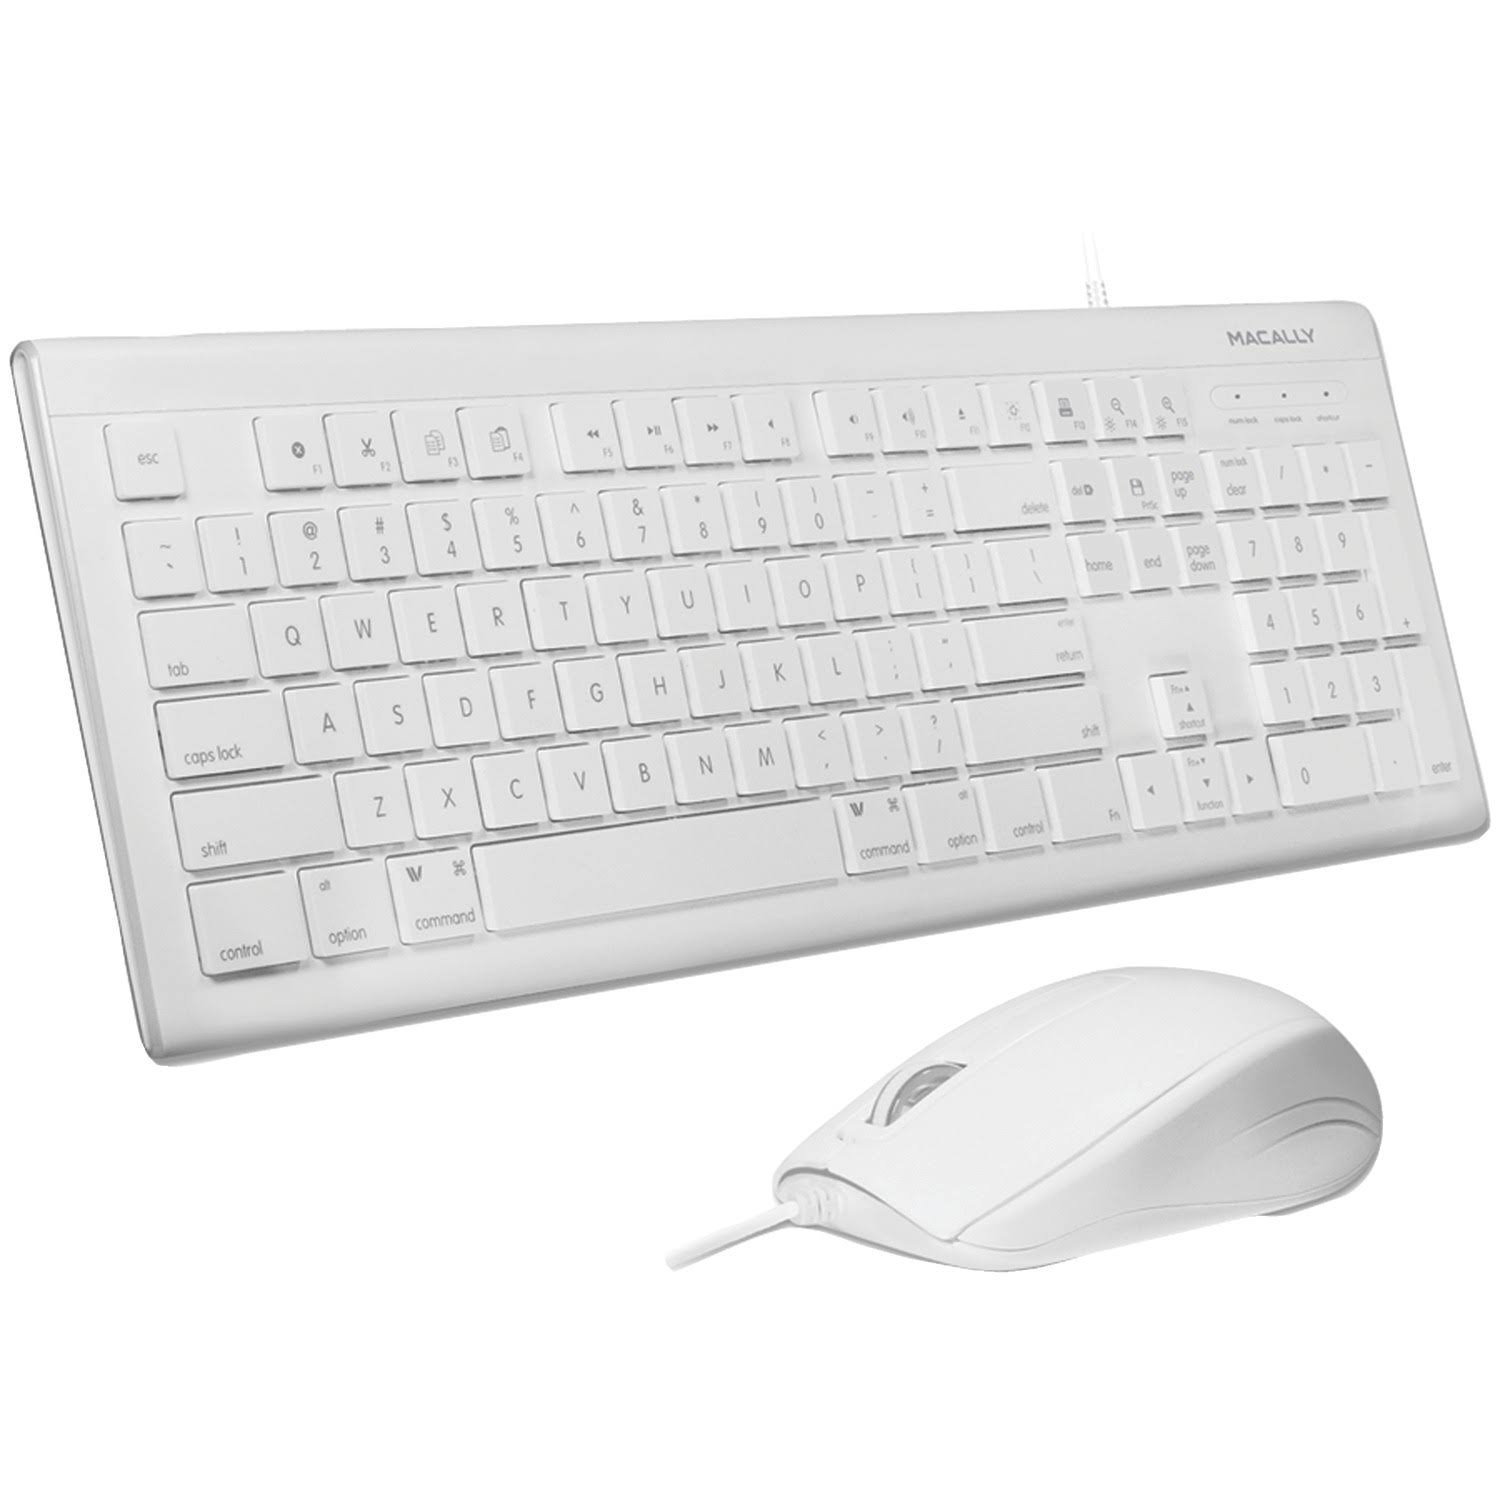 MacAlly 103 Key USB Keyboard and Mouse Combo - White at Small Dog Electronics